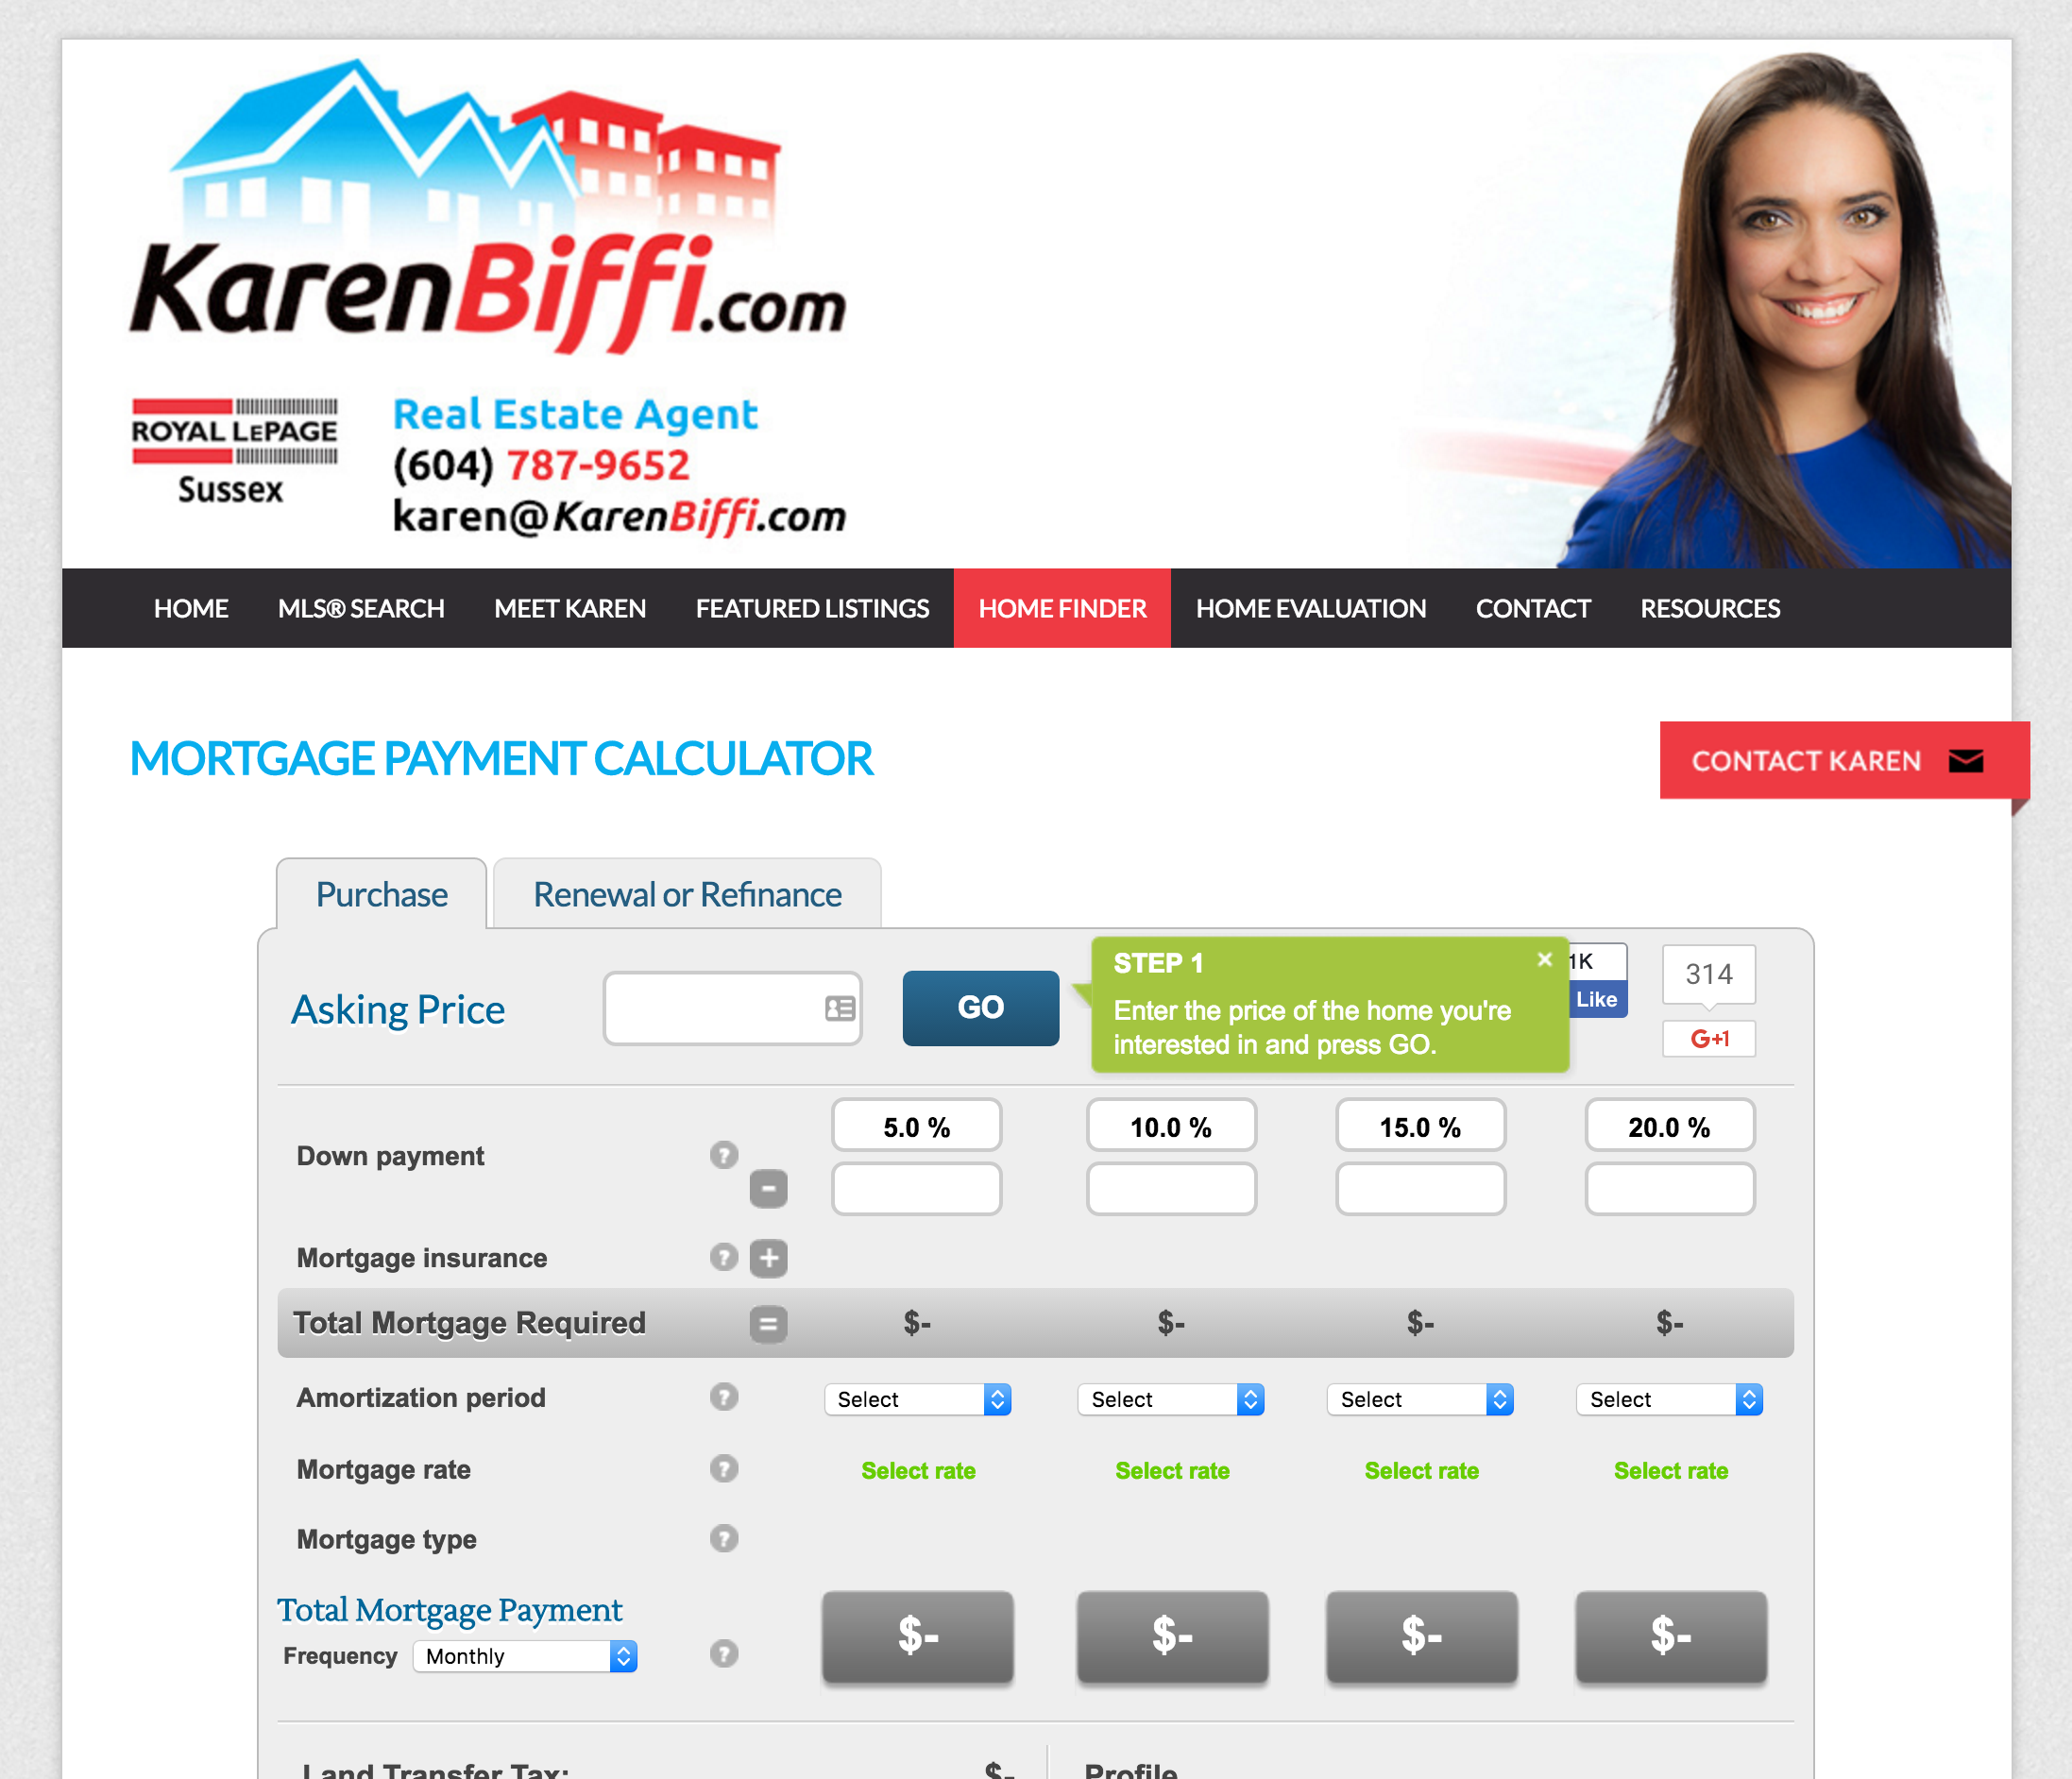 Example of a RateHub Mortgage Calculator on Karen Biffi's Real Estate Website